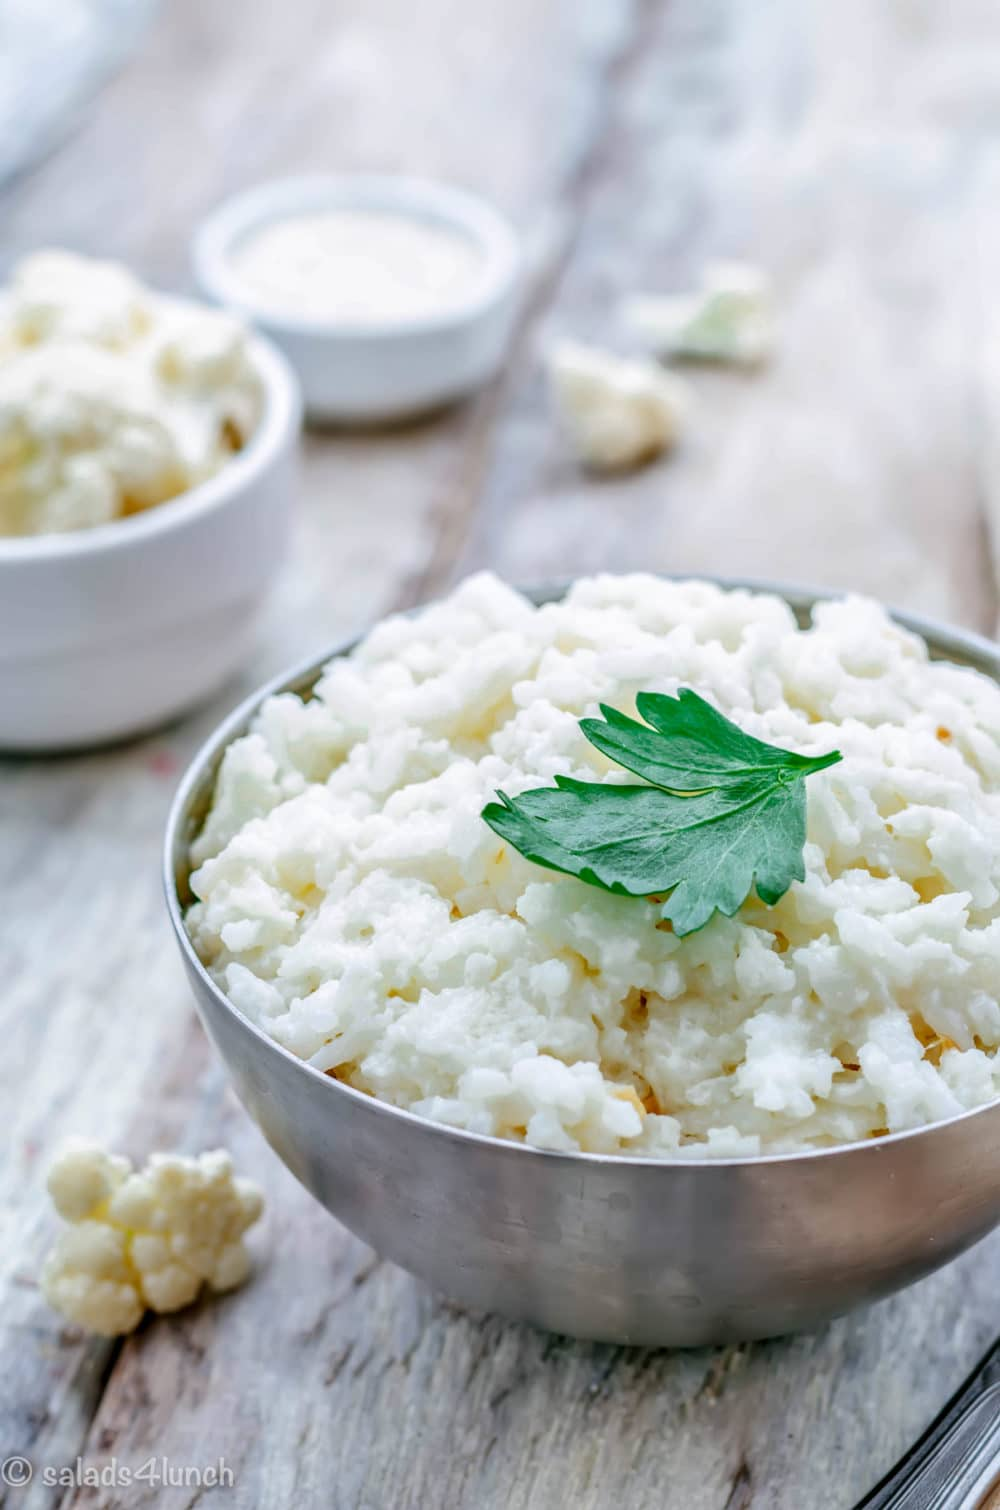 Garlic Parmesan Cauliflower Rice goes with almost everything from steak to chicken, to lean turkey meatballs. It's super flavourful with lots of olive oil, garlic, parmesan, fresh parsley and salt and black pepper.